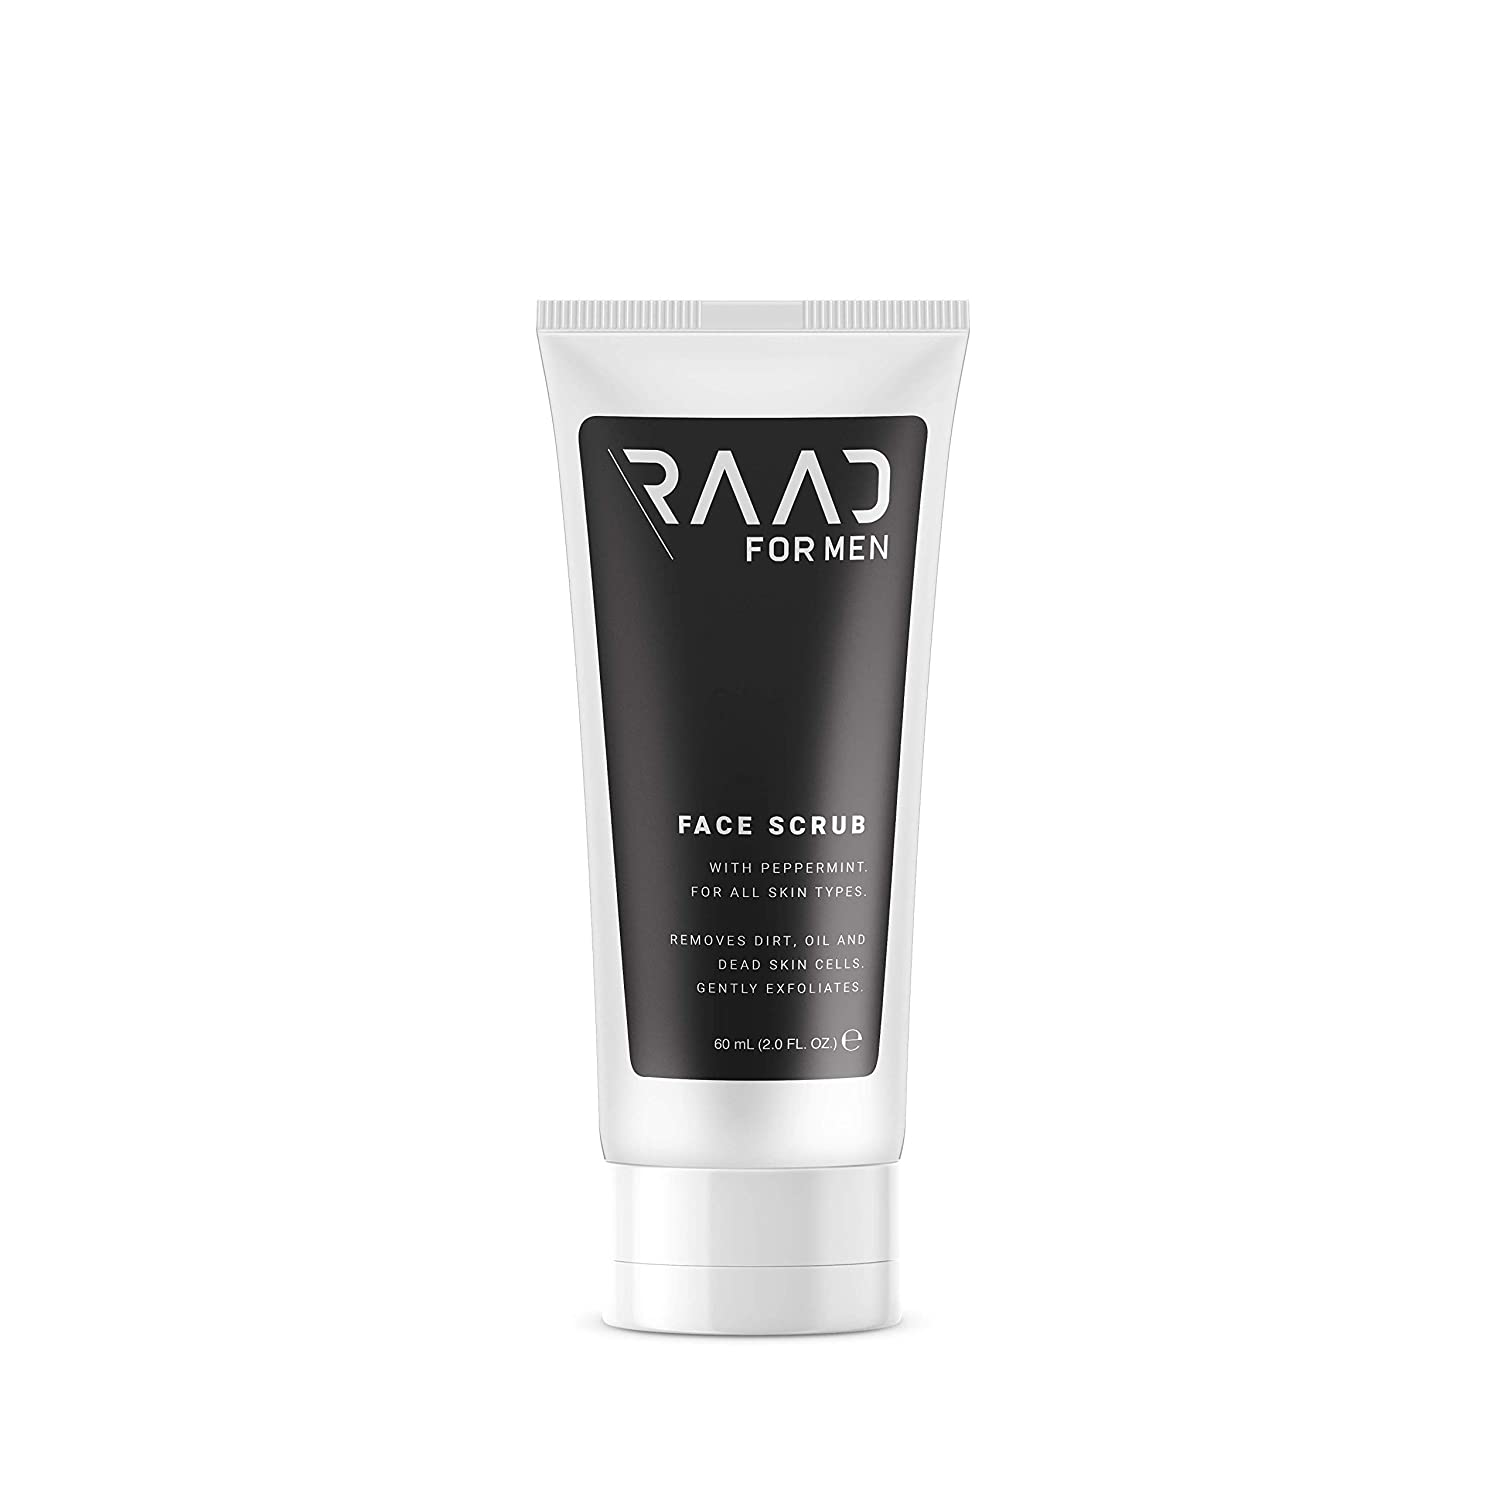 RAAD For Men - Face Scrub and Exfoliator for Men, Formulated with Peppermint and Jojoba Beads, Natural Ingredients